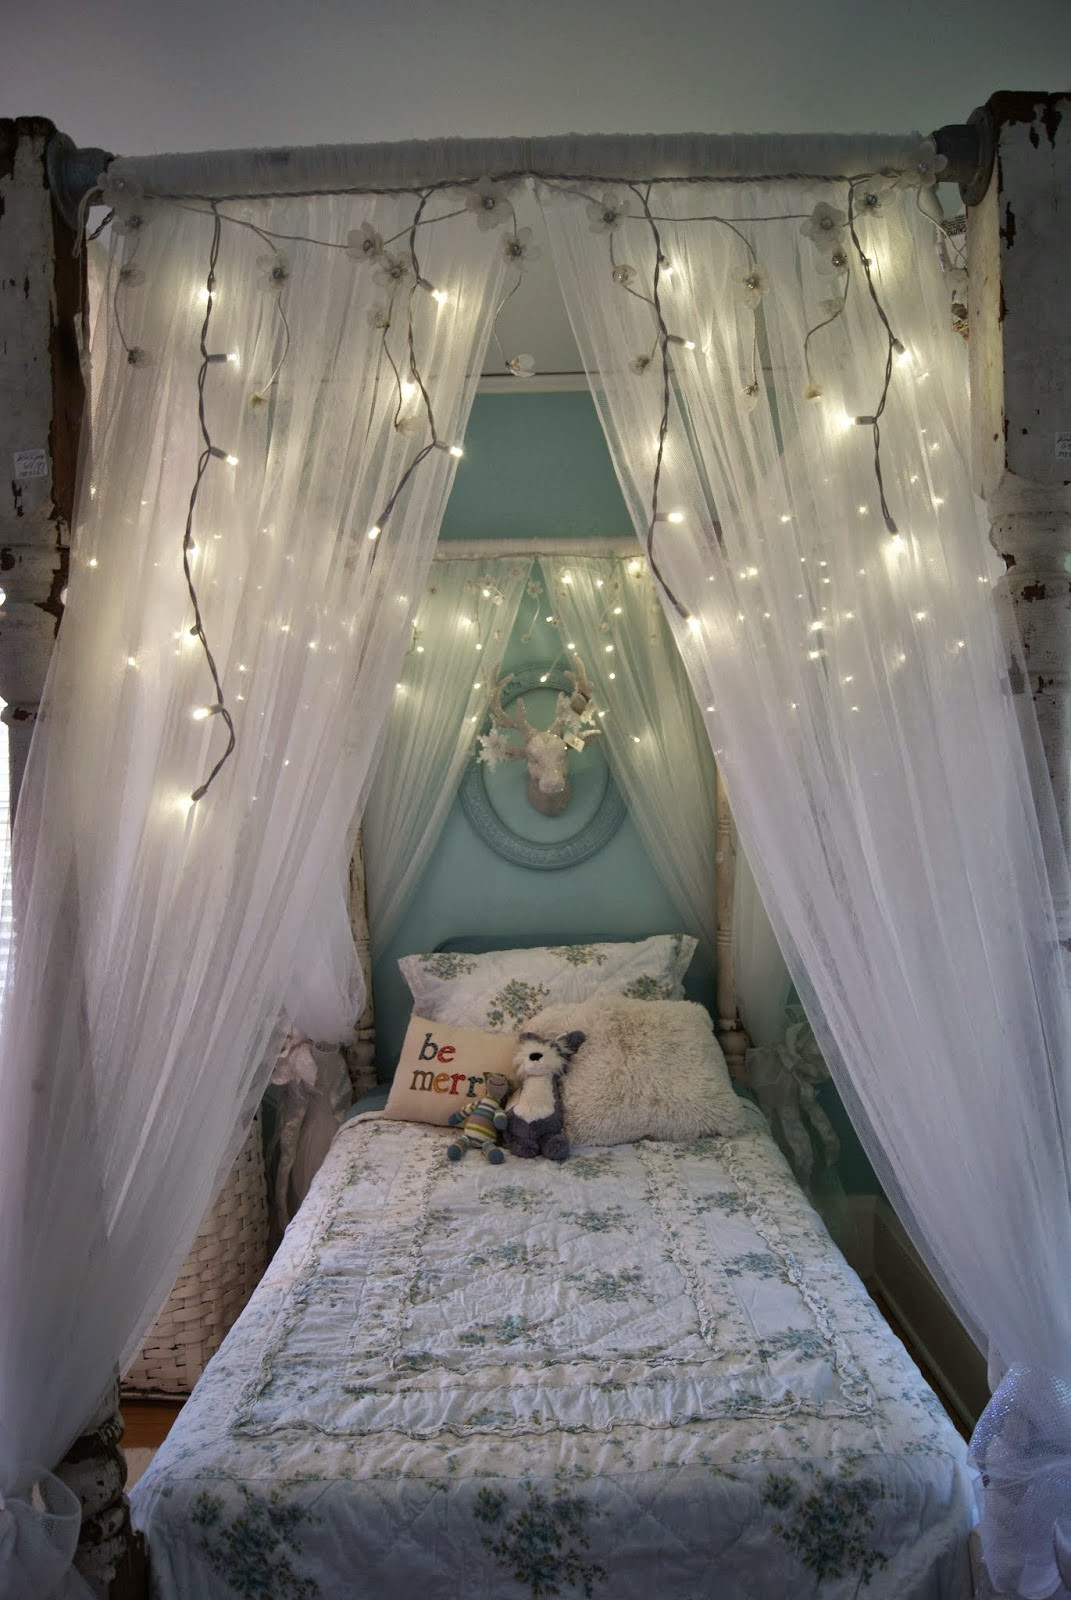 Best ideas about DIY Canopy Bed Curtains . Save or Pin Ideas for DIY Canopy Bed Frame and Curtains Curtains Design Now.